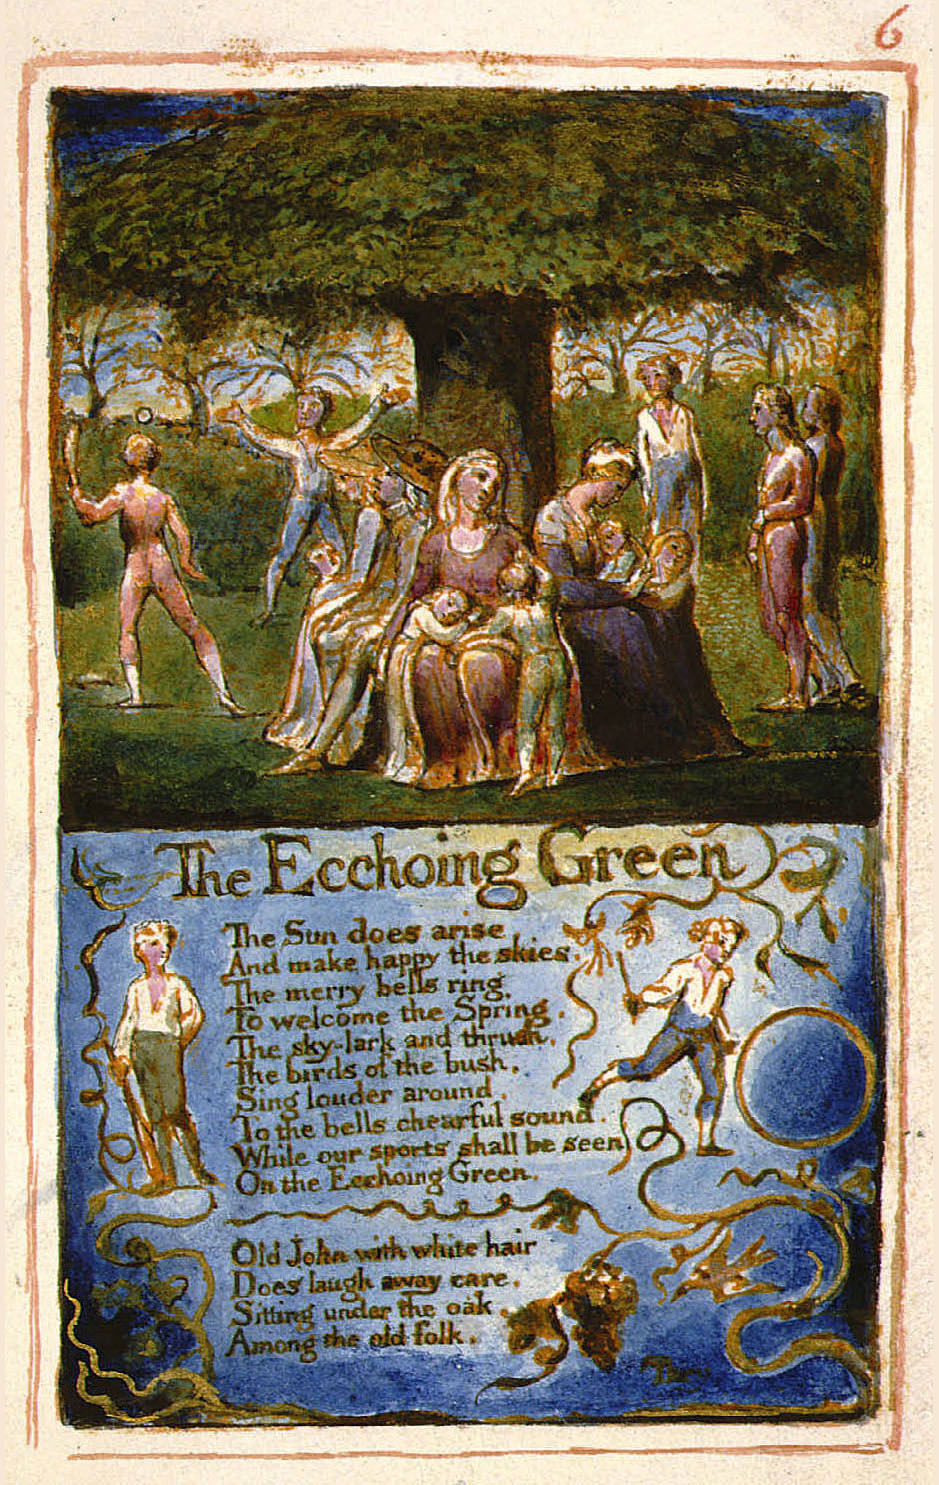 6 The Ecchoing Green The Sun does arise And make happy the skies. The merry bells ring To welcome the Spring. The sky-lark and thrush, The birds of the bush. Sing louder around. To the bells chearful sound. While our sports shall be seen On the Ecchoing Green. Old John with white hair Does laugh away care. Sitting under the oak. Among the old folk. They